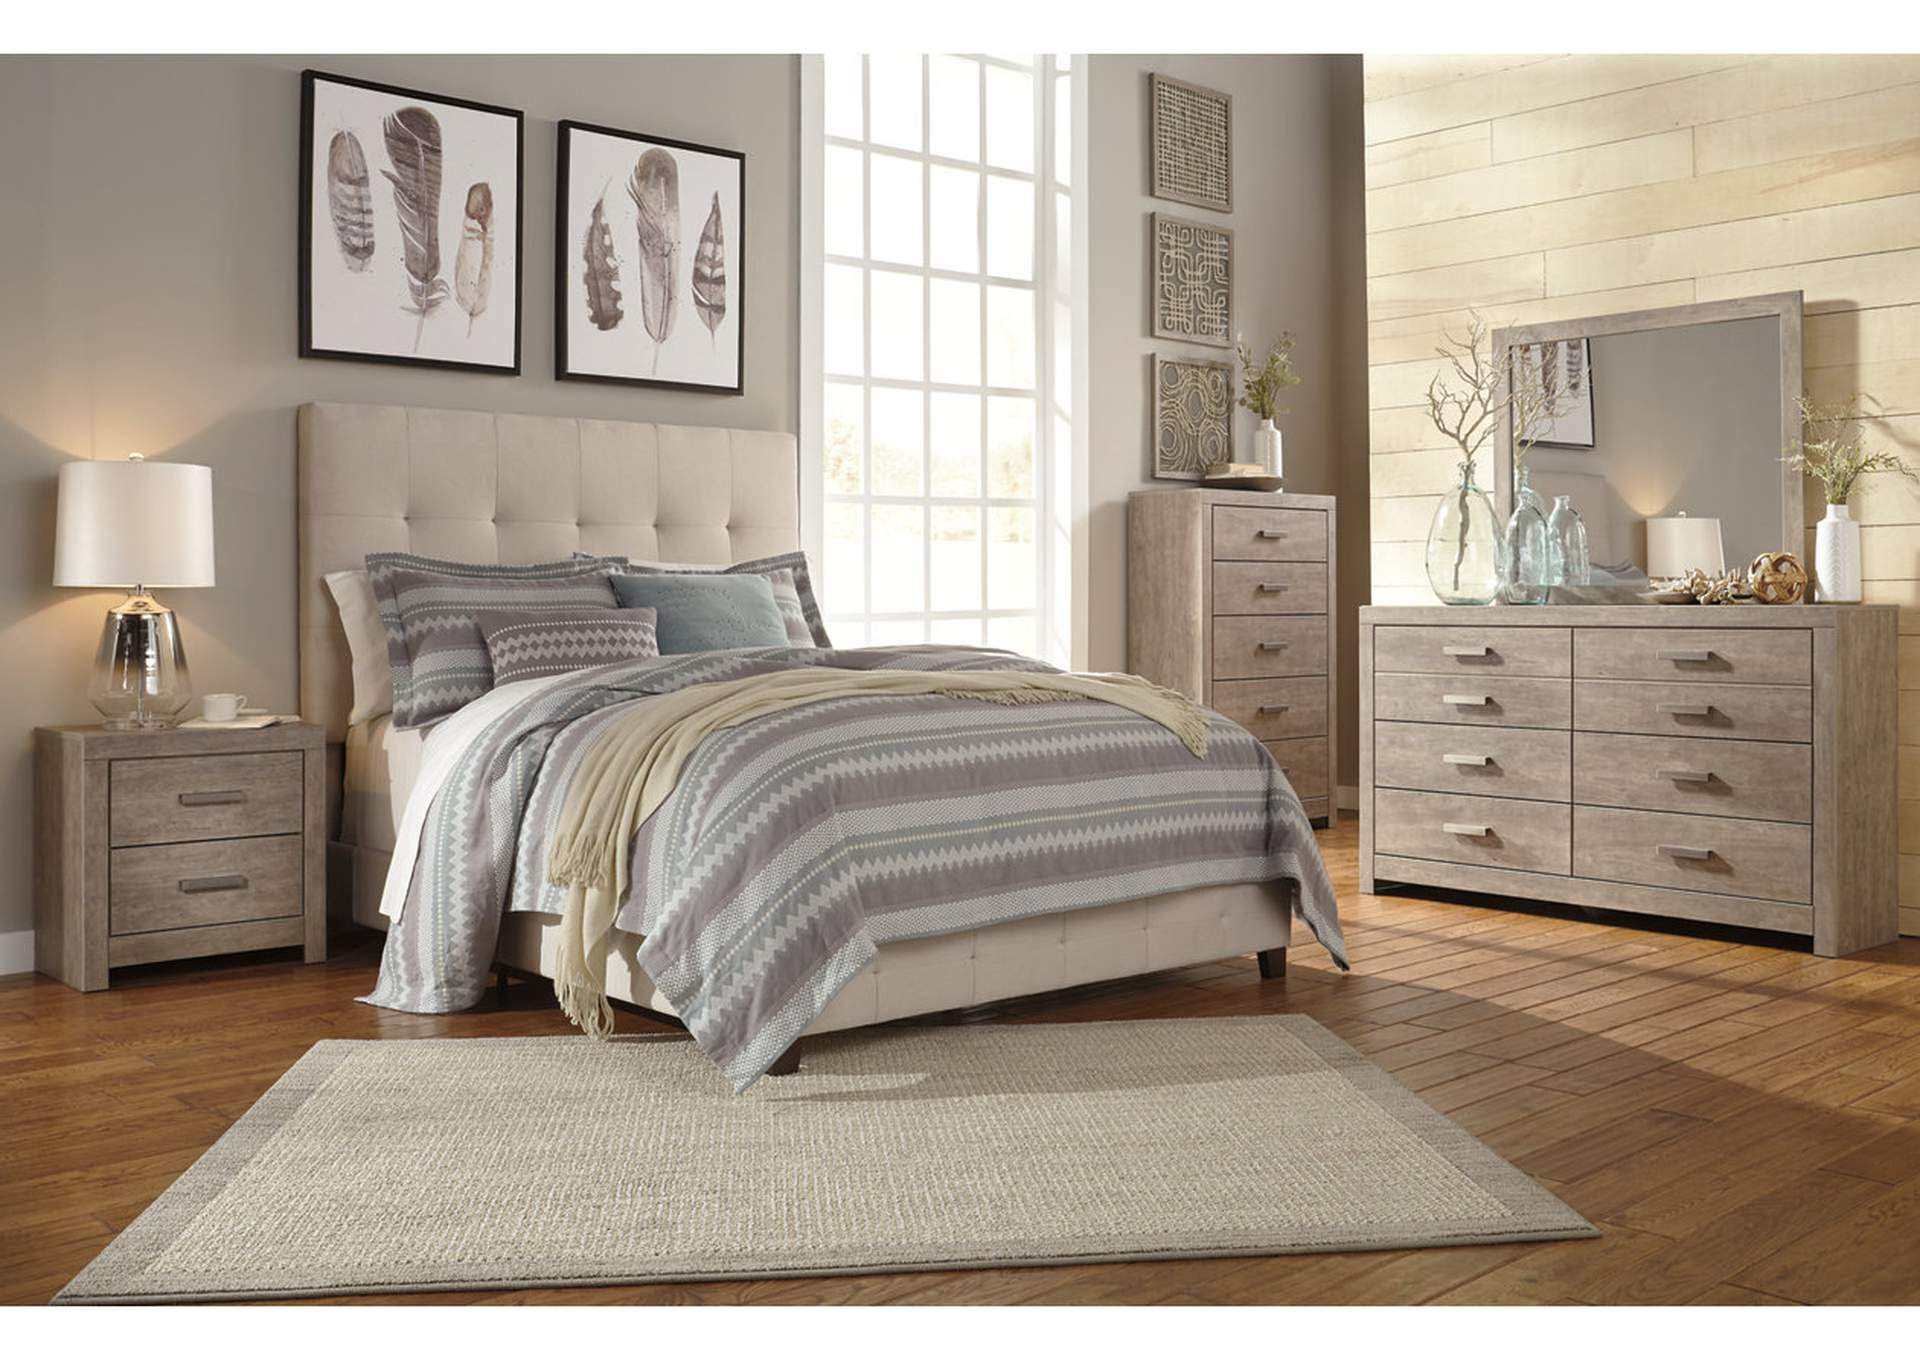 Landmark Home Furnishings Houma La Beige Queen Upholstered Bed